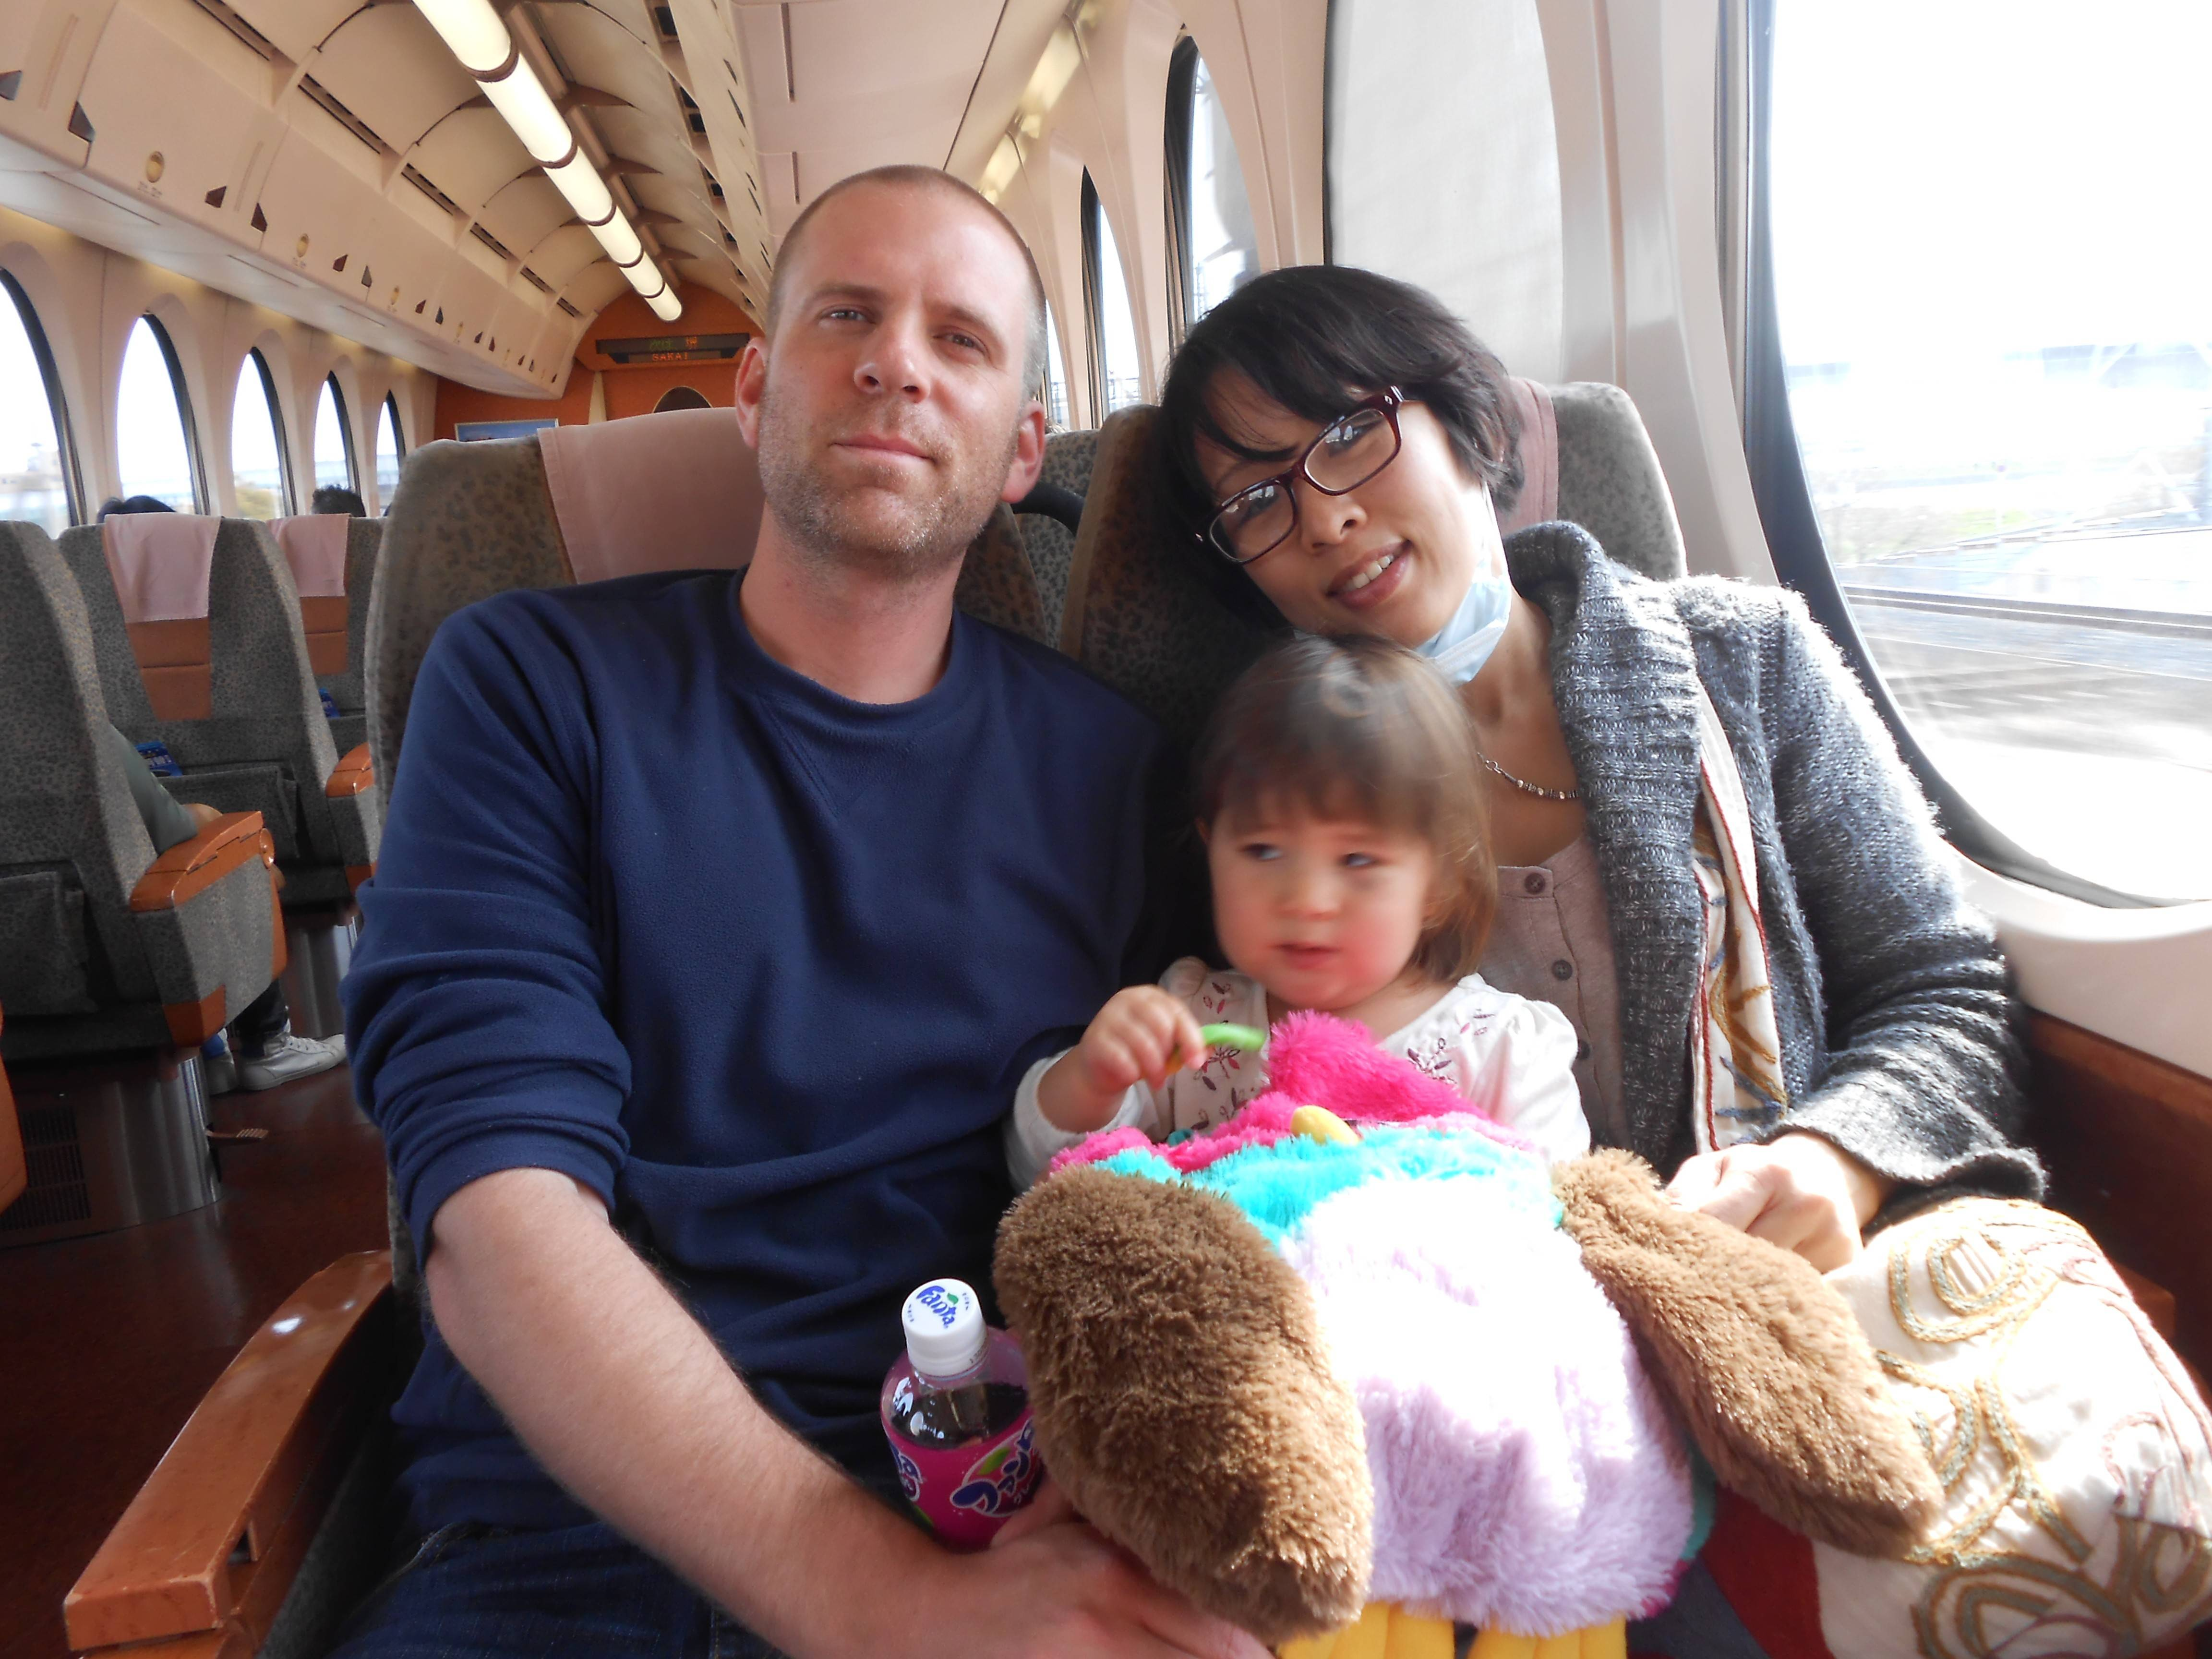 Mike Blodgett, seen here with his wife, Ikuchan, and their daughter, Olivia, is recuperating after he want missing for six days while hiking on Mount Omine in Japan.